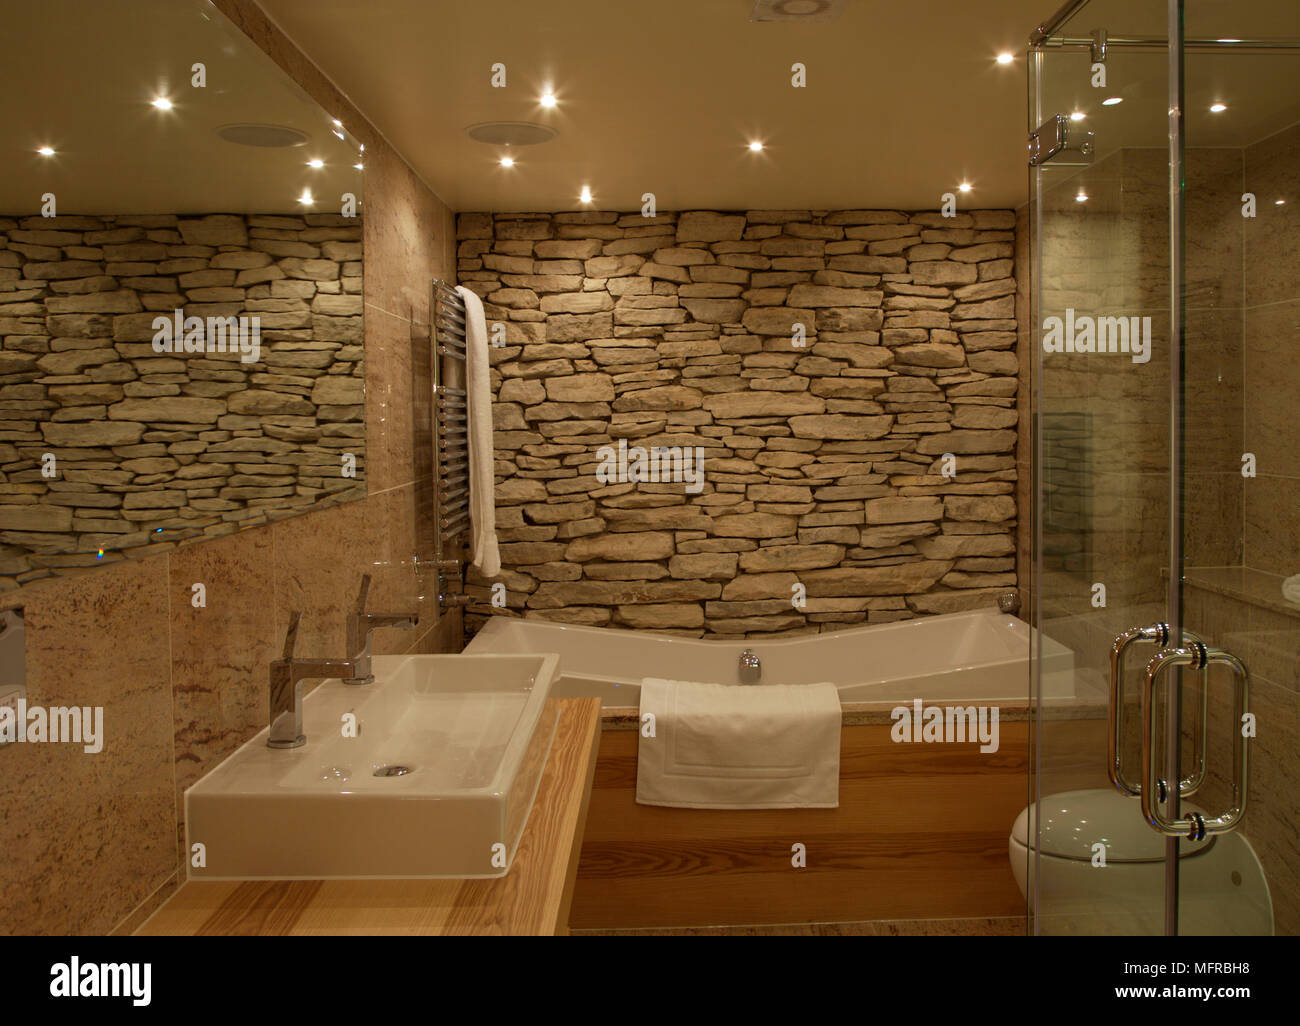 Exceptionnel Ensuite Bathroom With Exposed Stone Wall And Bare Wood Units ...